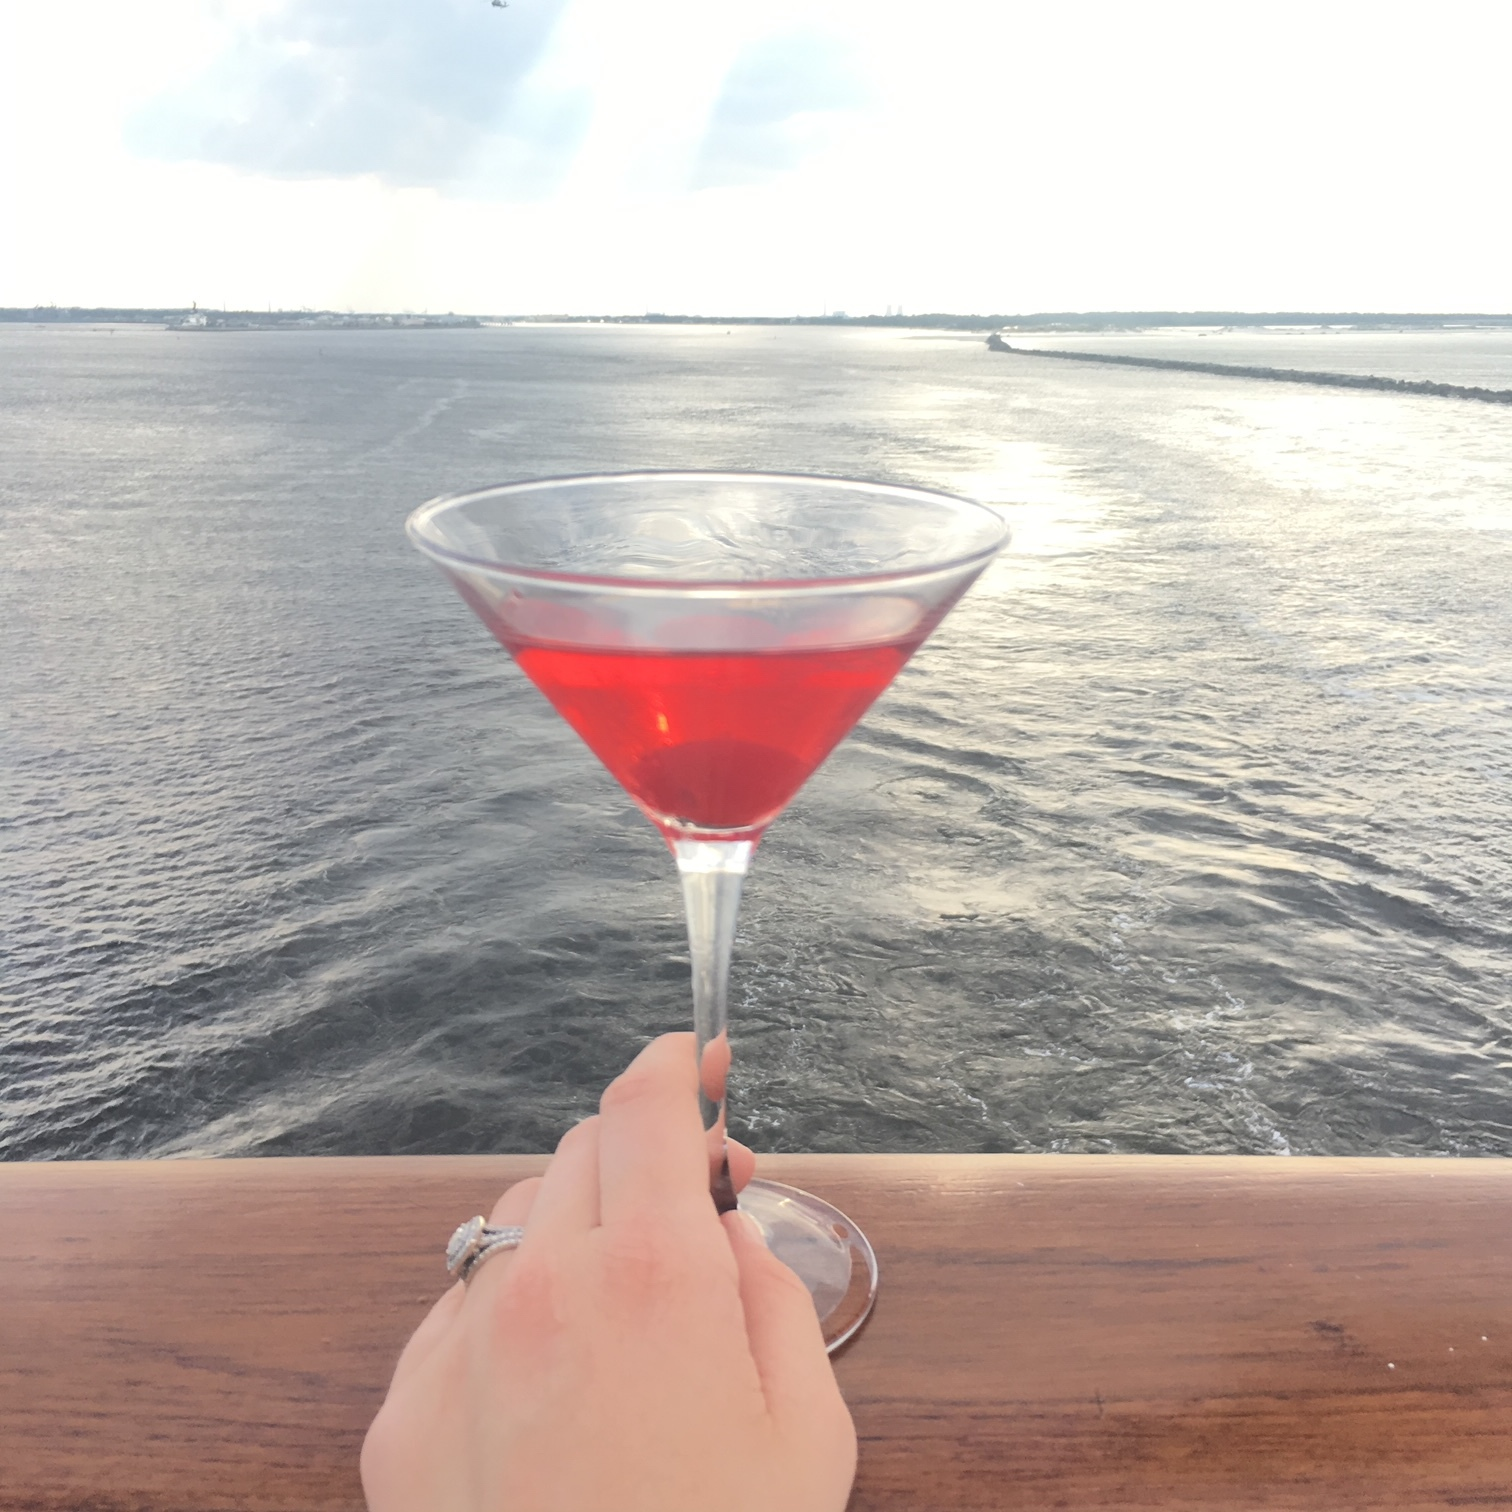 15 Things I Wish I Knew Before  My First Cruise - Blogger Sarah J - Top USA Travel Blogger  (10).JPG